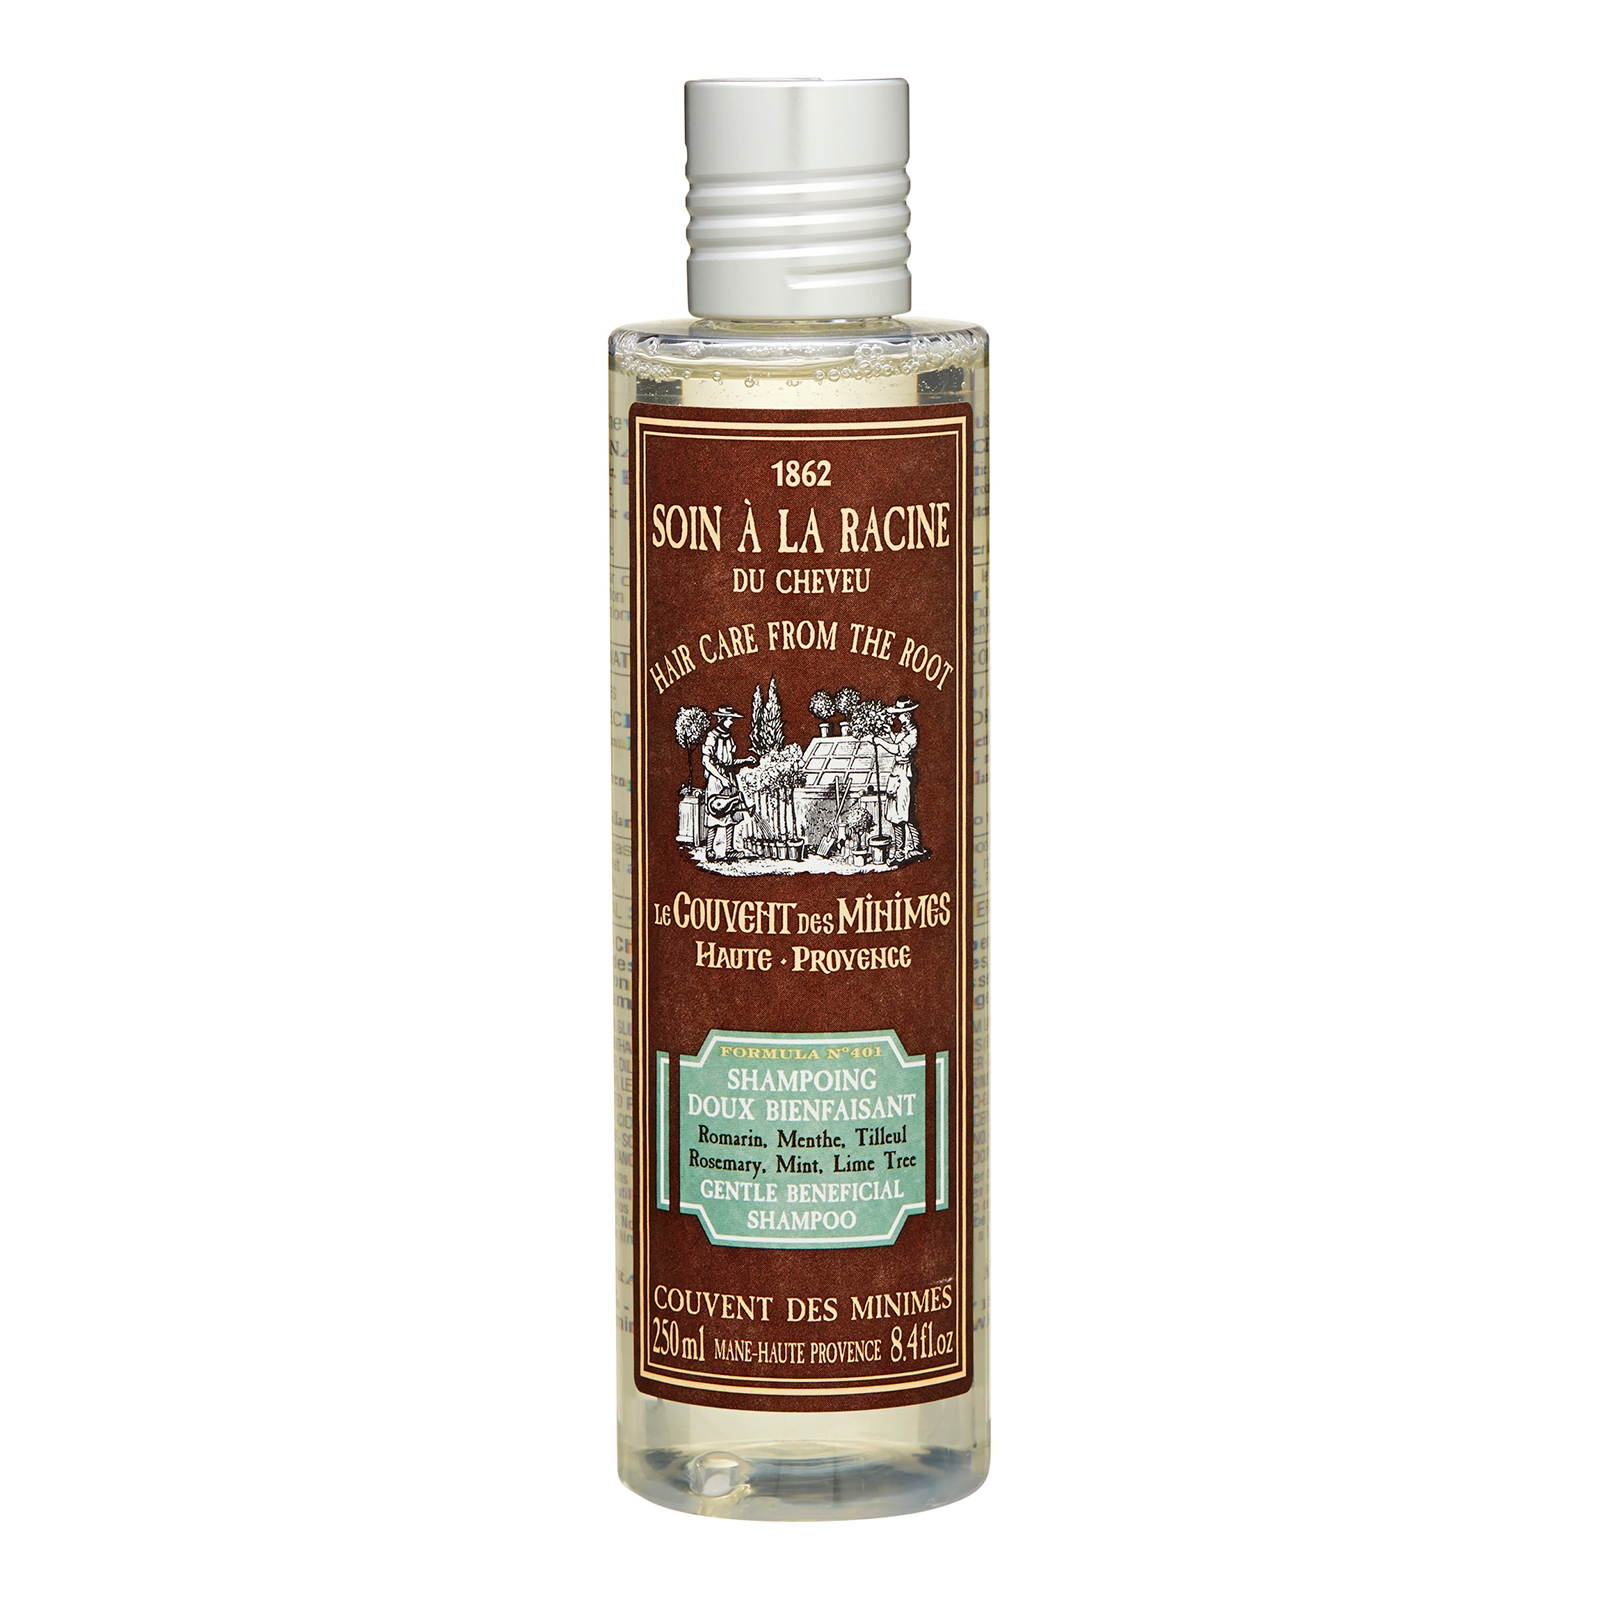 Le Couvent des Minimes Hair Care from the Root Gentle Beneficial Shampoo (For All Hair Types) 8.4oz, 250ml